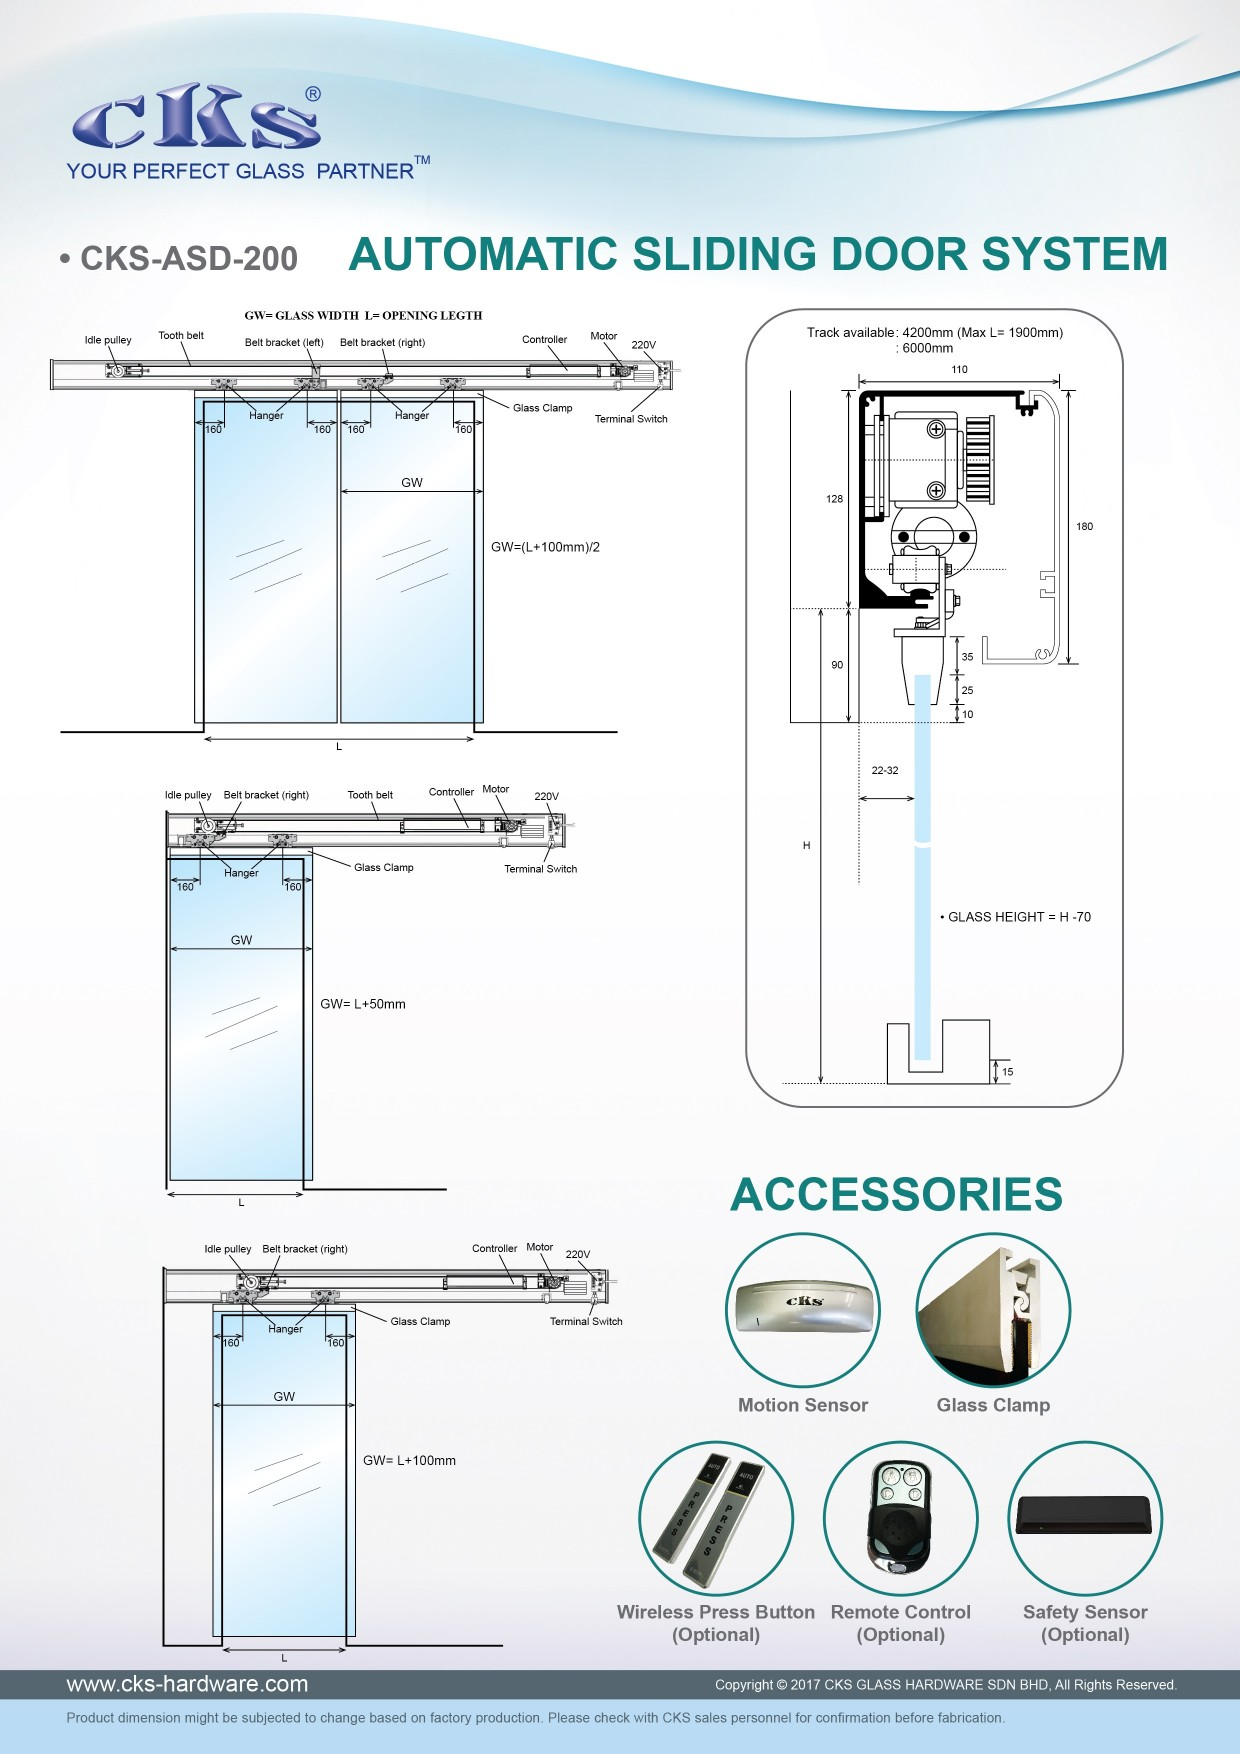 Cks Glass Hardware Automatic Sliding Door System